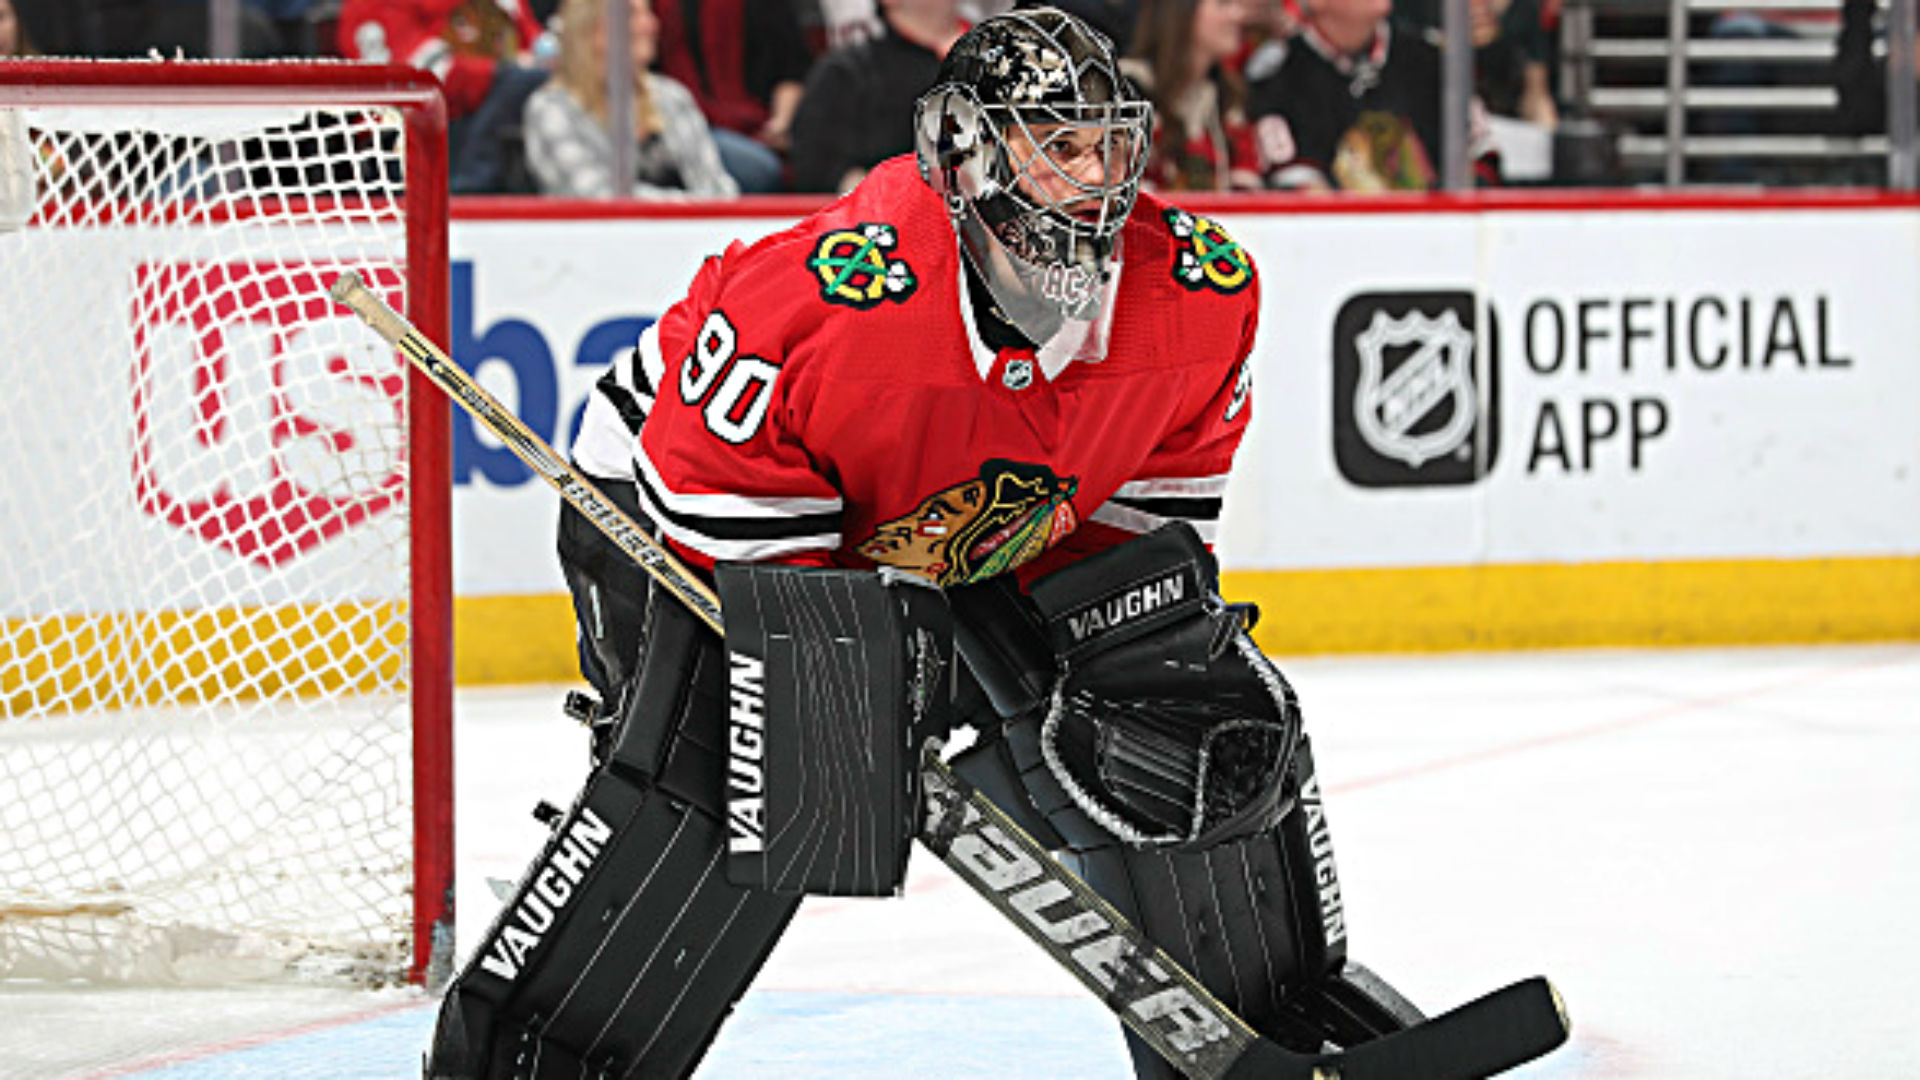 NHL surprise: 36-year-old accountant plays goalie in Chicago Blackhawks win